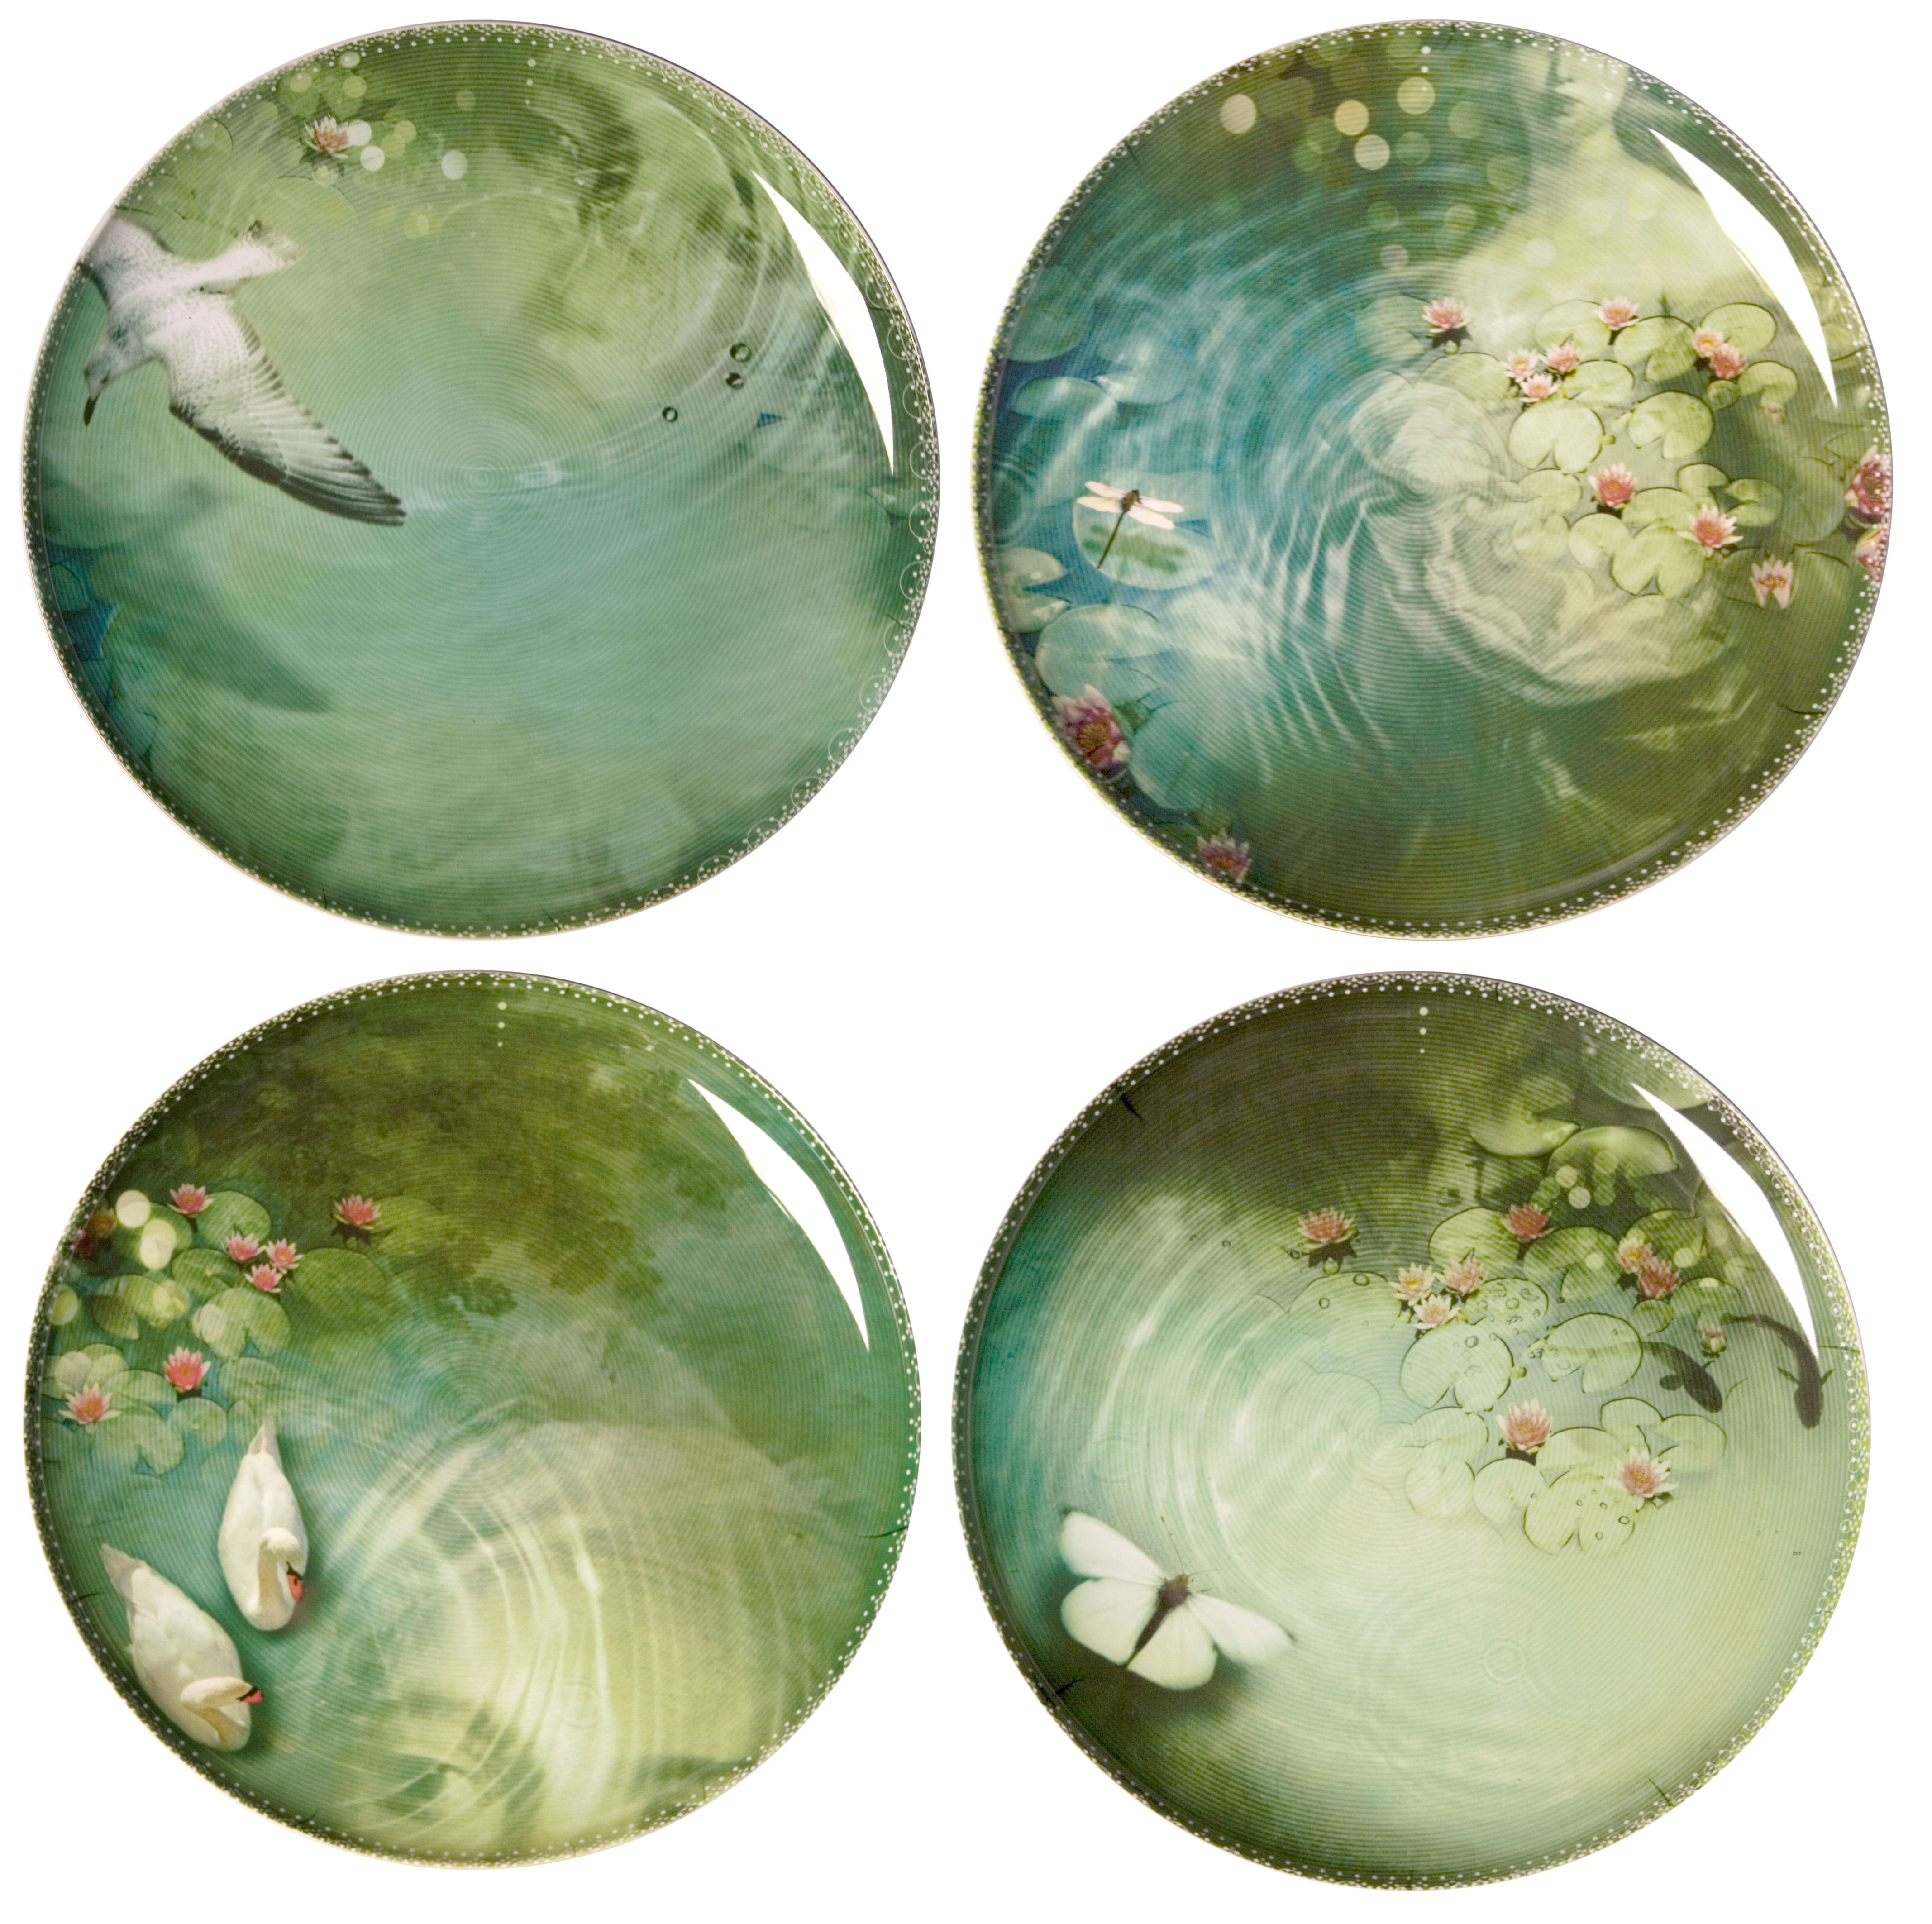 Yuan plate set of 4 black green printed by ibride - Vaisselle de luxe marque ...